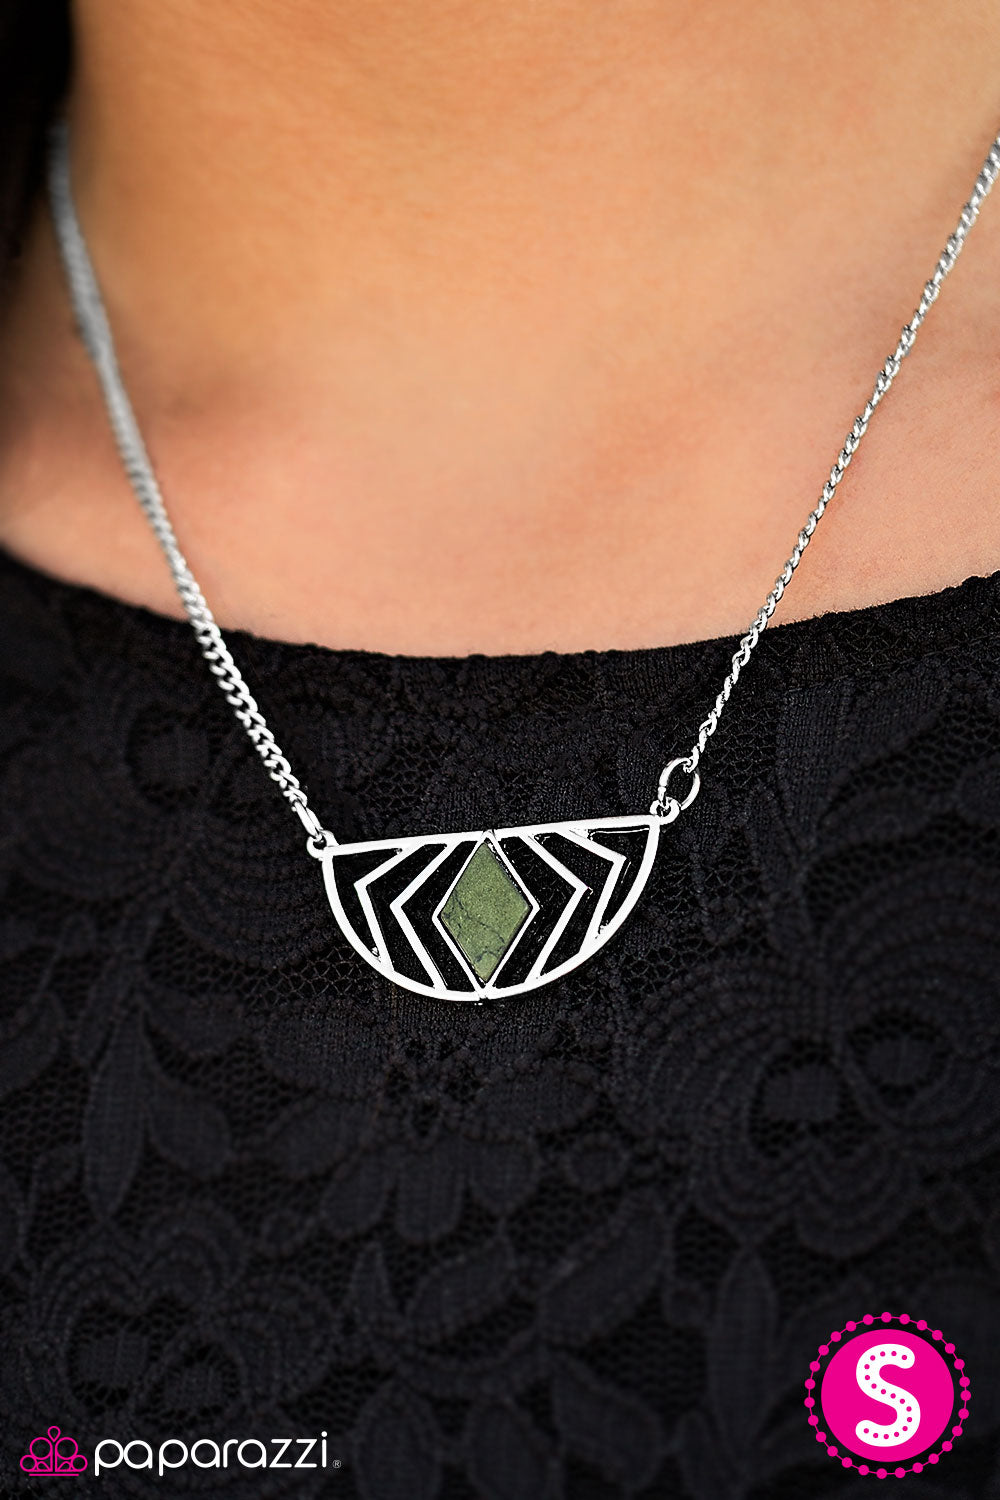 On The GEO - Green - Paparazzi necklace